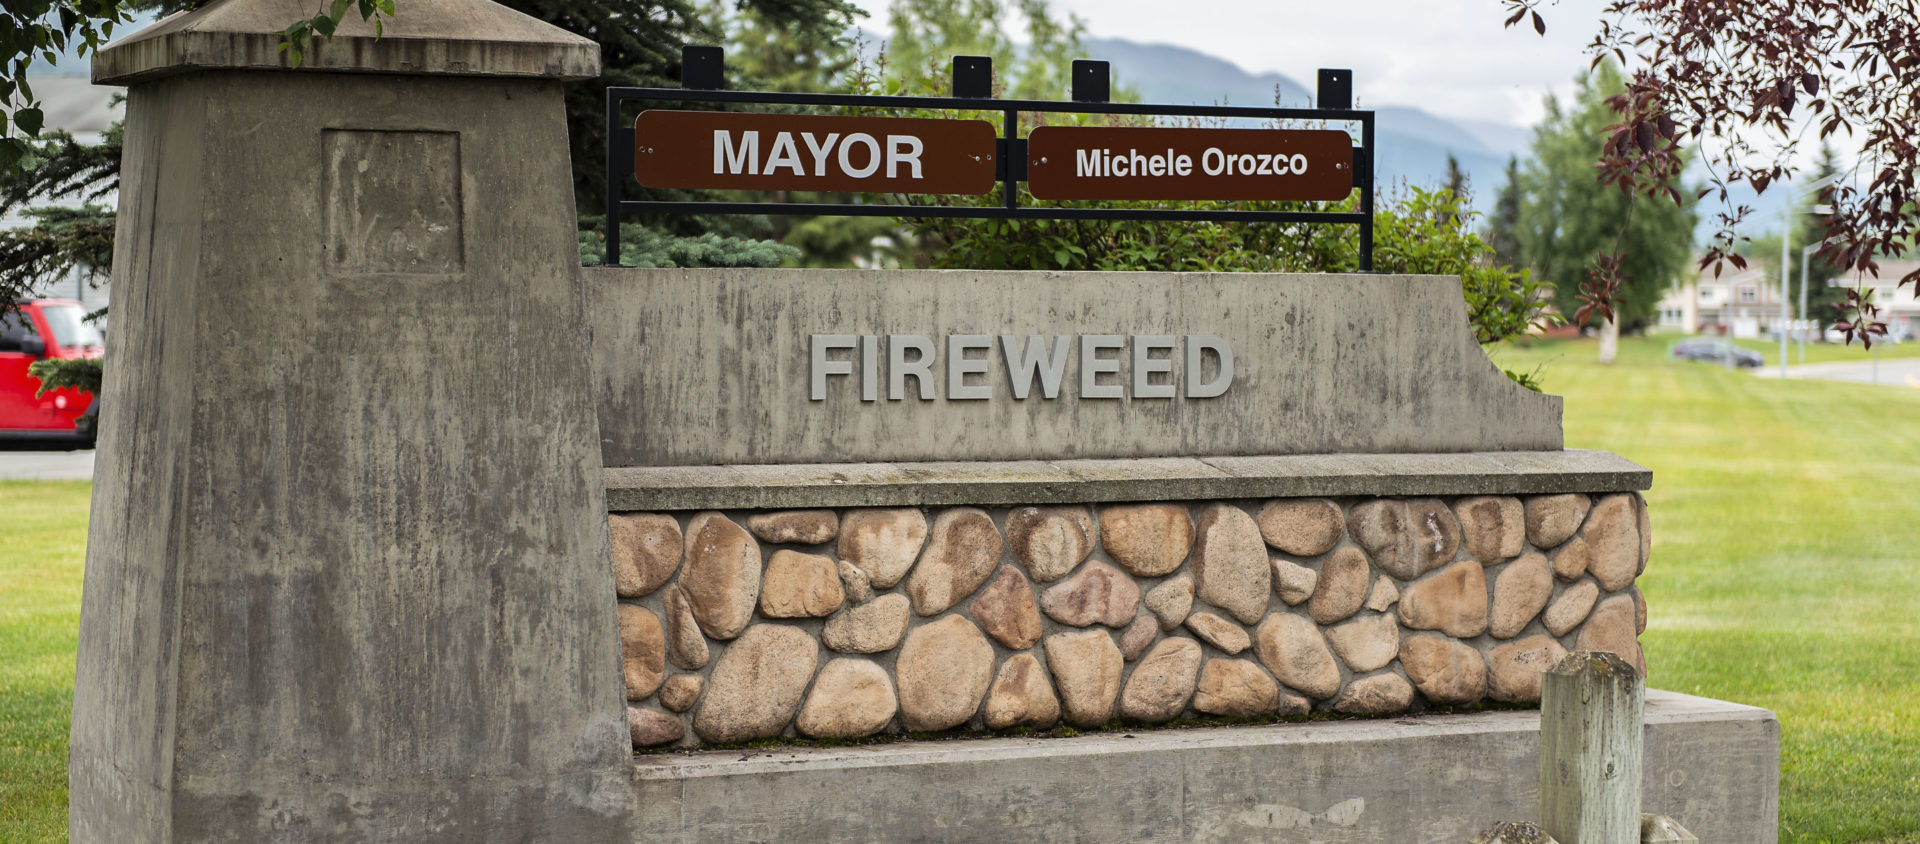 Fireweed neighborhood and monument sign